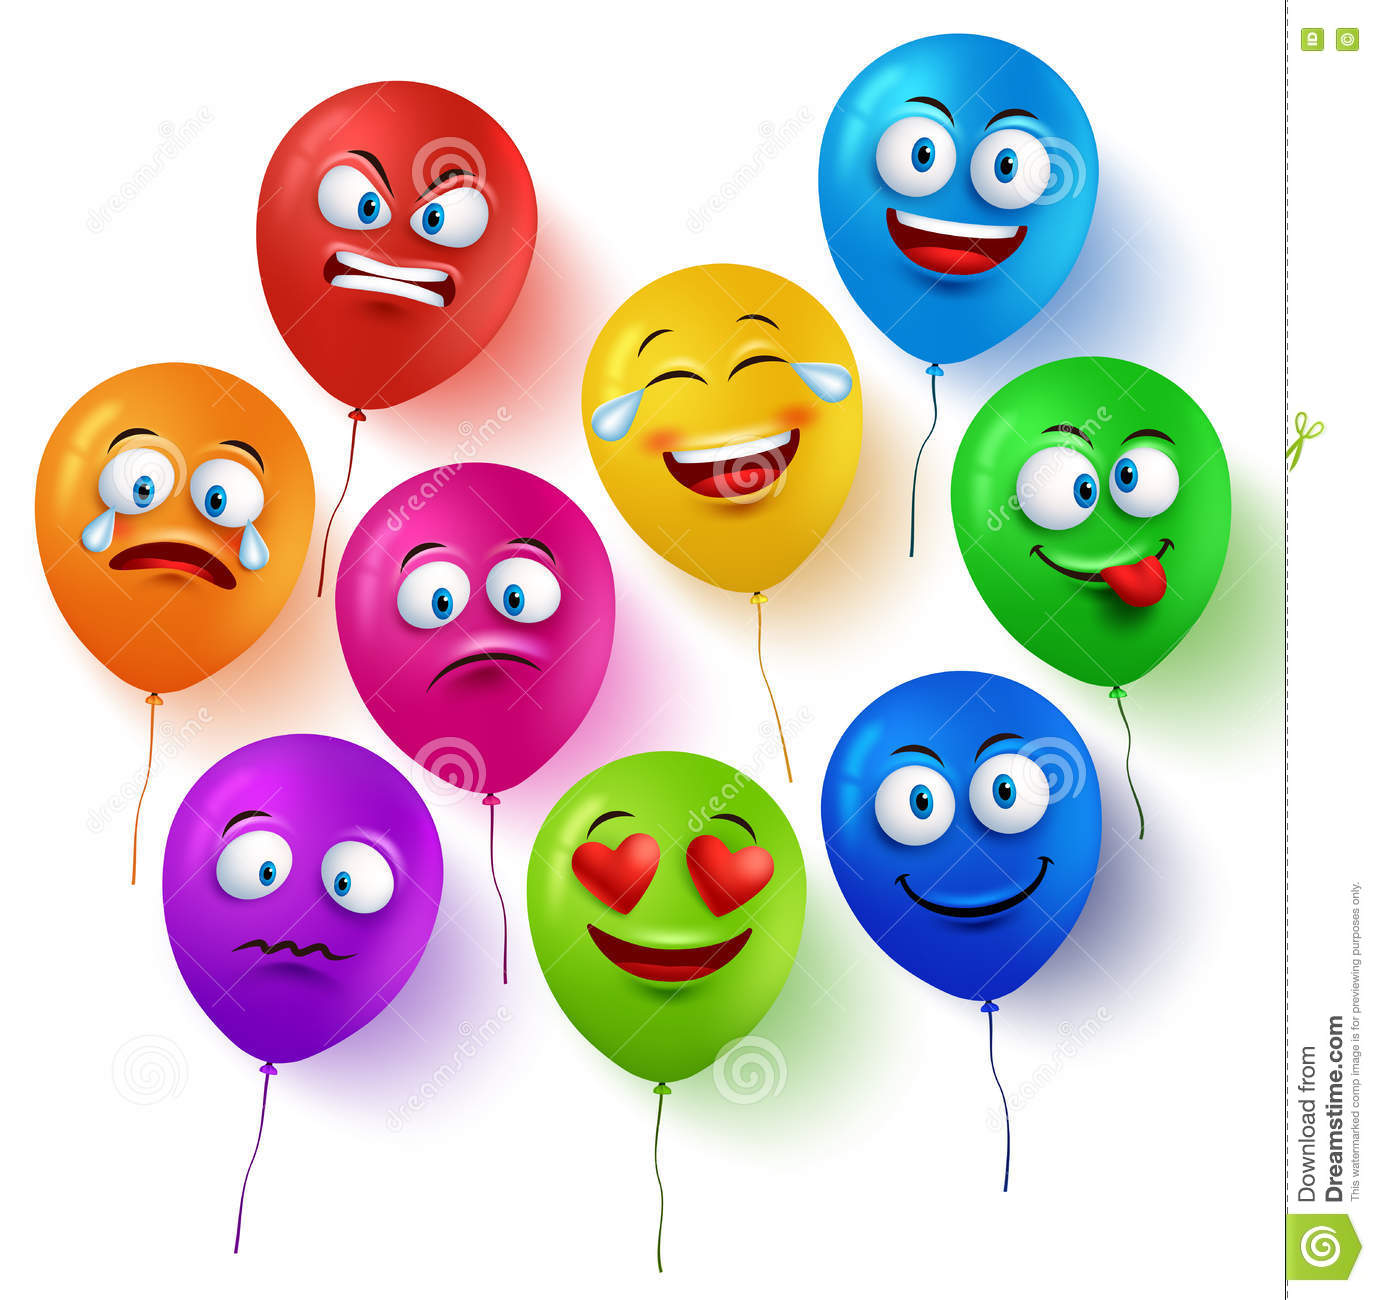 Funny balloon faces - Vector Balloon Faces Colorful Set With Funny Facial Expressions